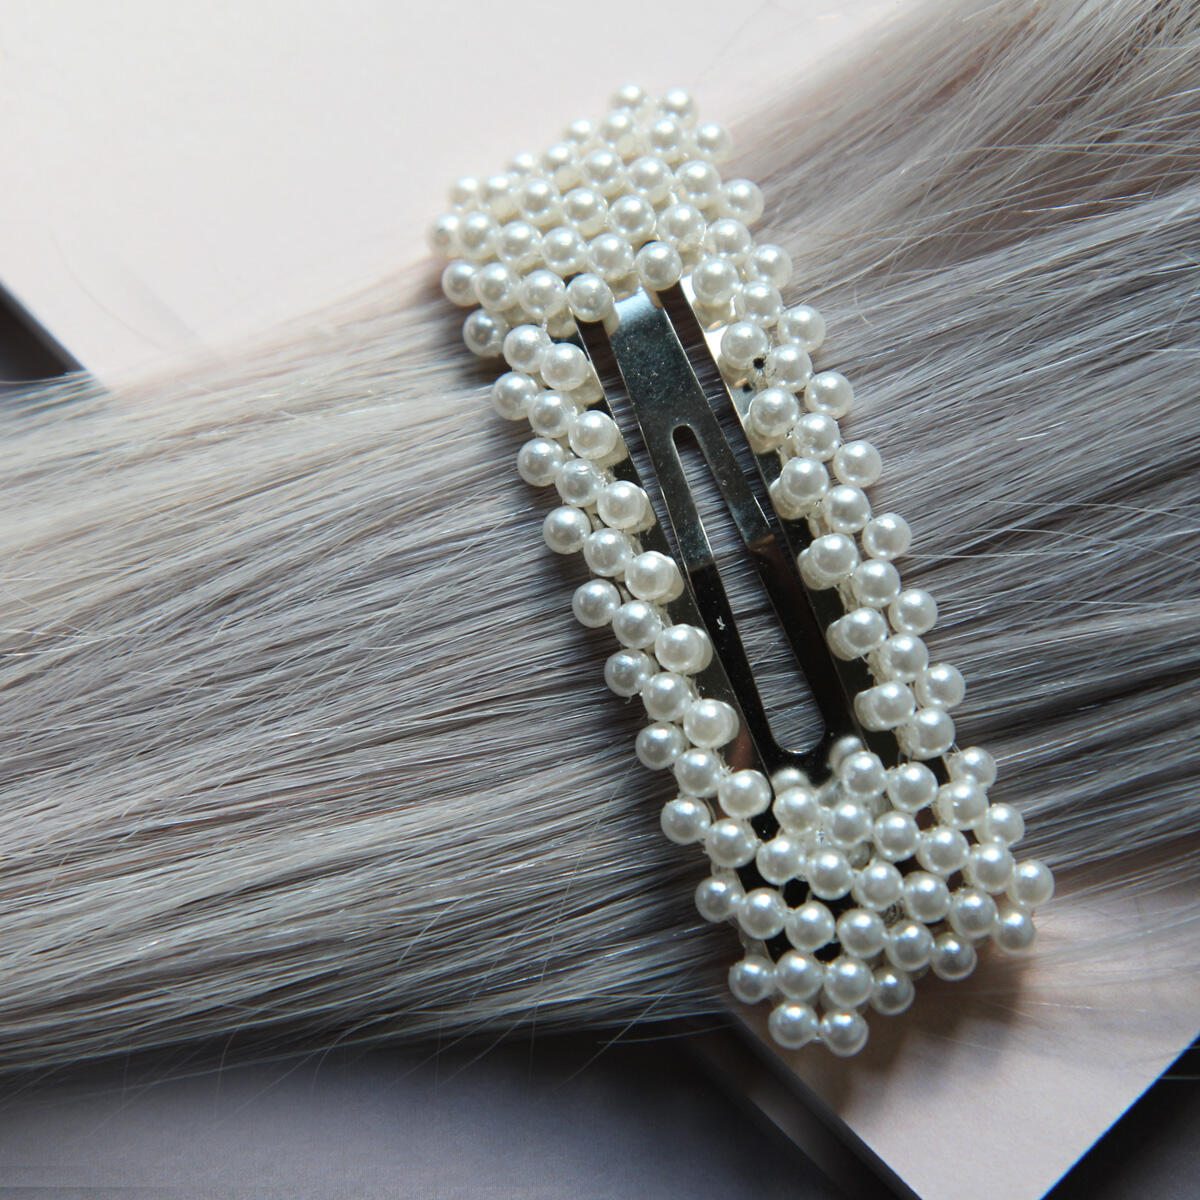 Rectangular hair slides with pearls Pearl Collection no. 13